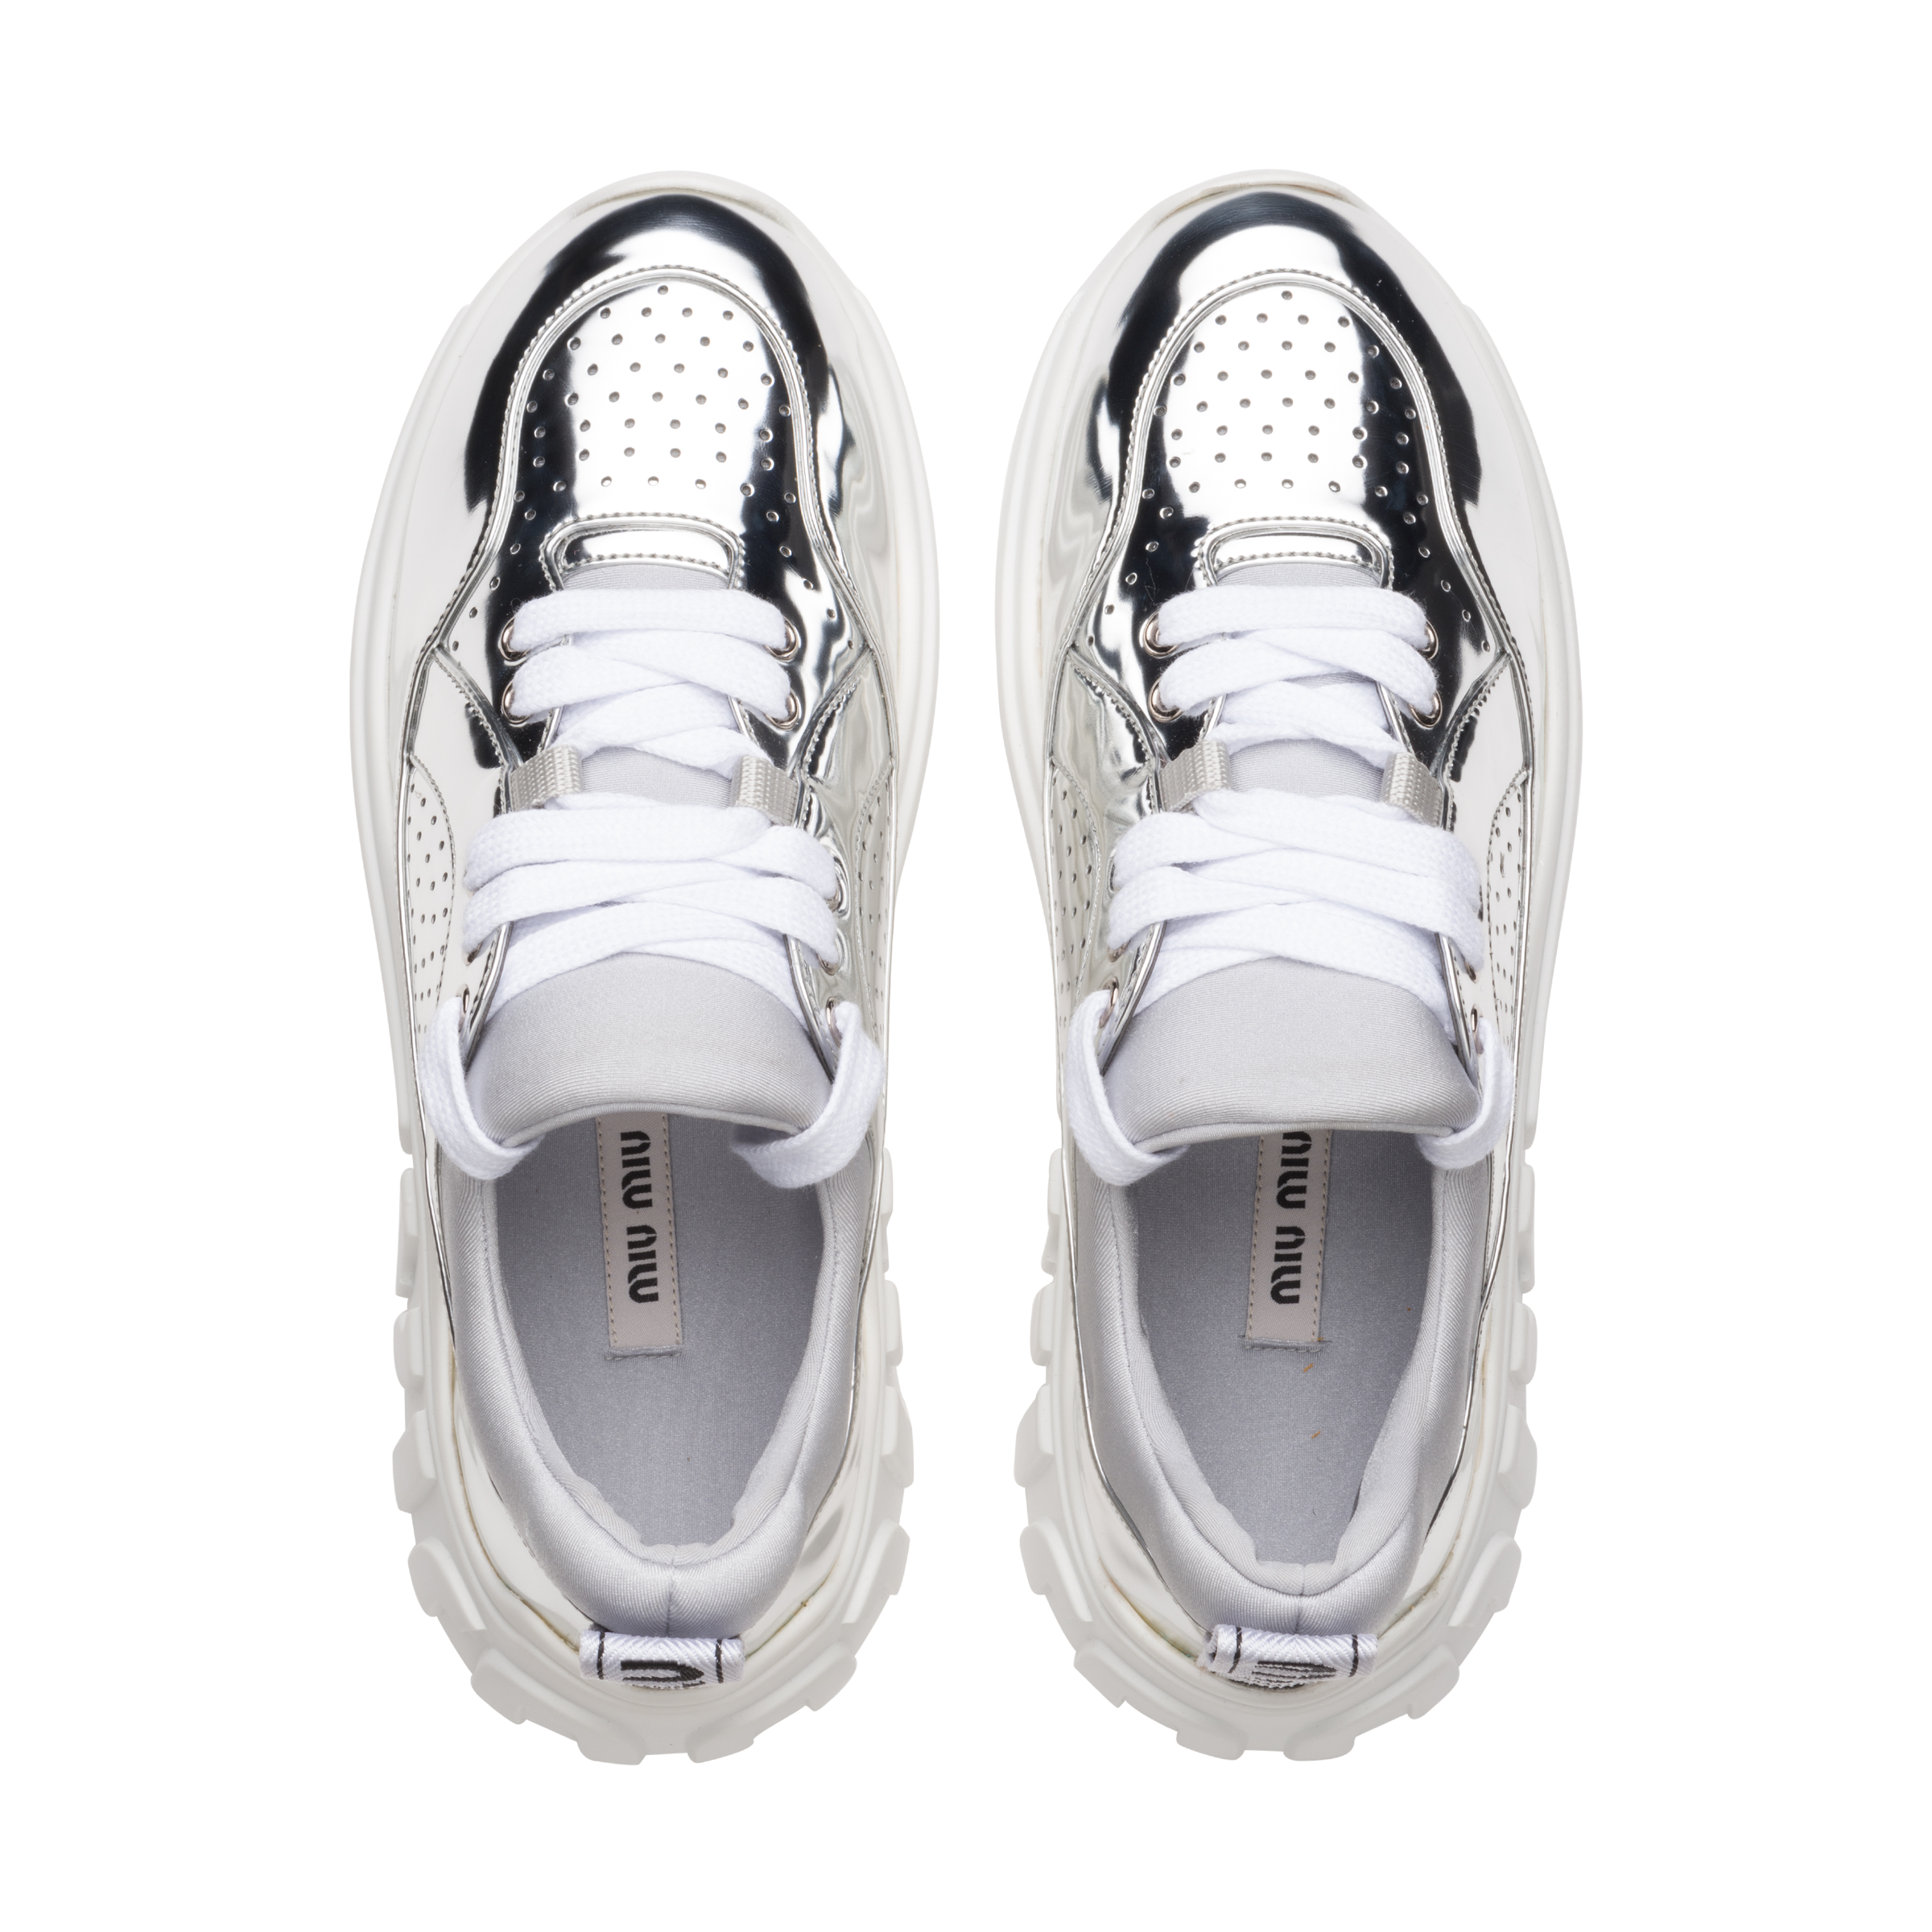 Funktionsgewebe Metall Sneakers Run Run Miu Metall Miu Sneakers Run Miu Funktionsgewebe Y9EHIWDe2